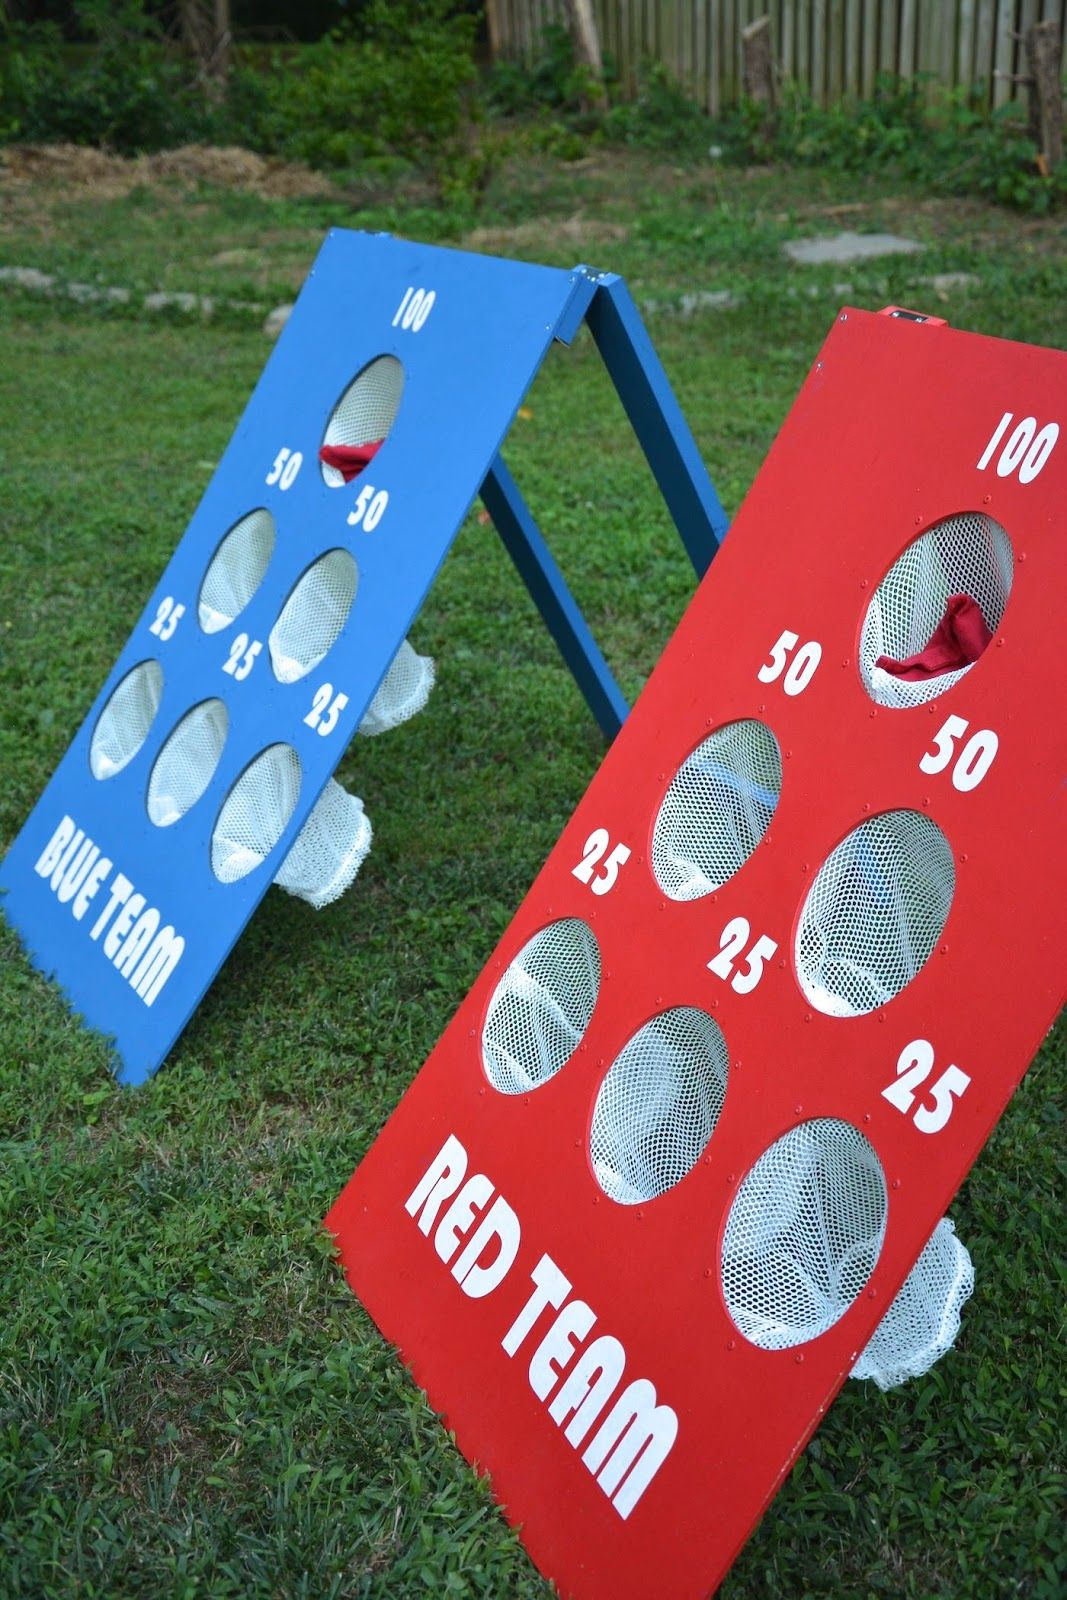 Lustige Spiele Für Draußen Erwachsene How To Make A Diy Backyard Bean Bag Toss Game Love The